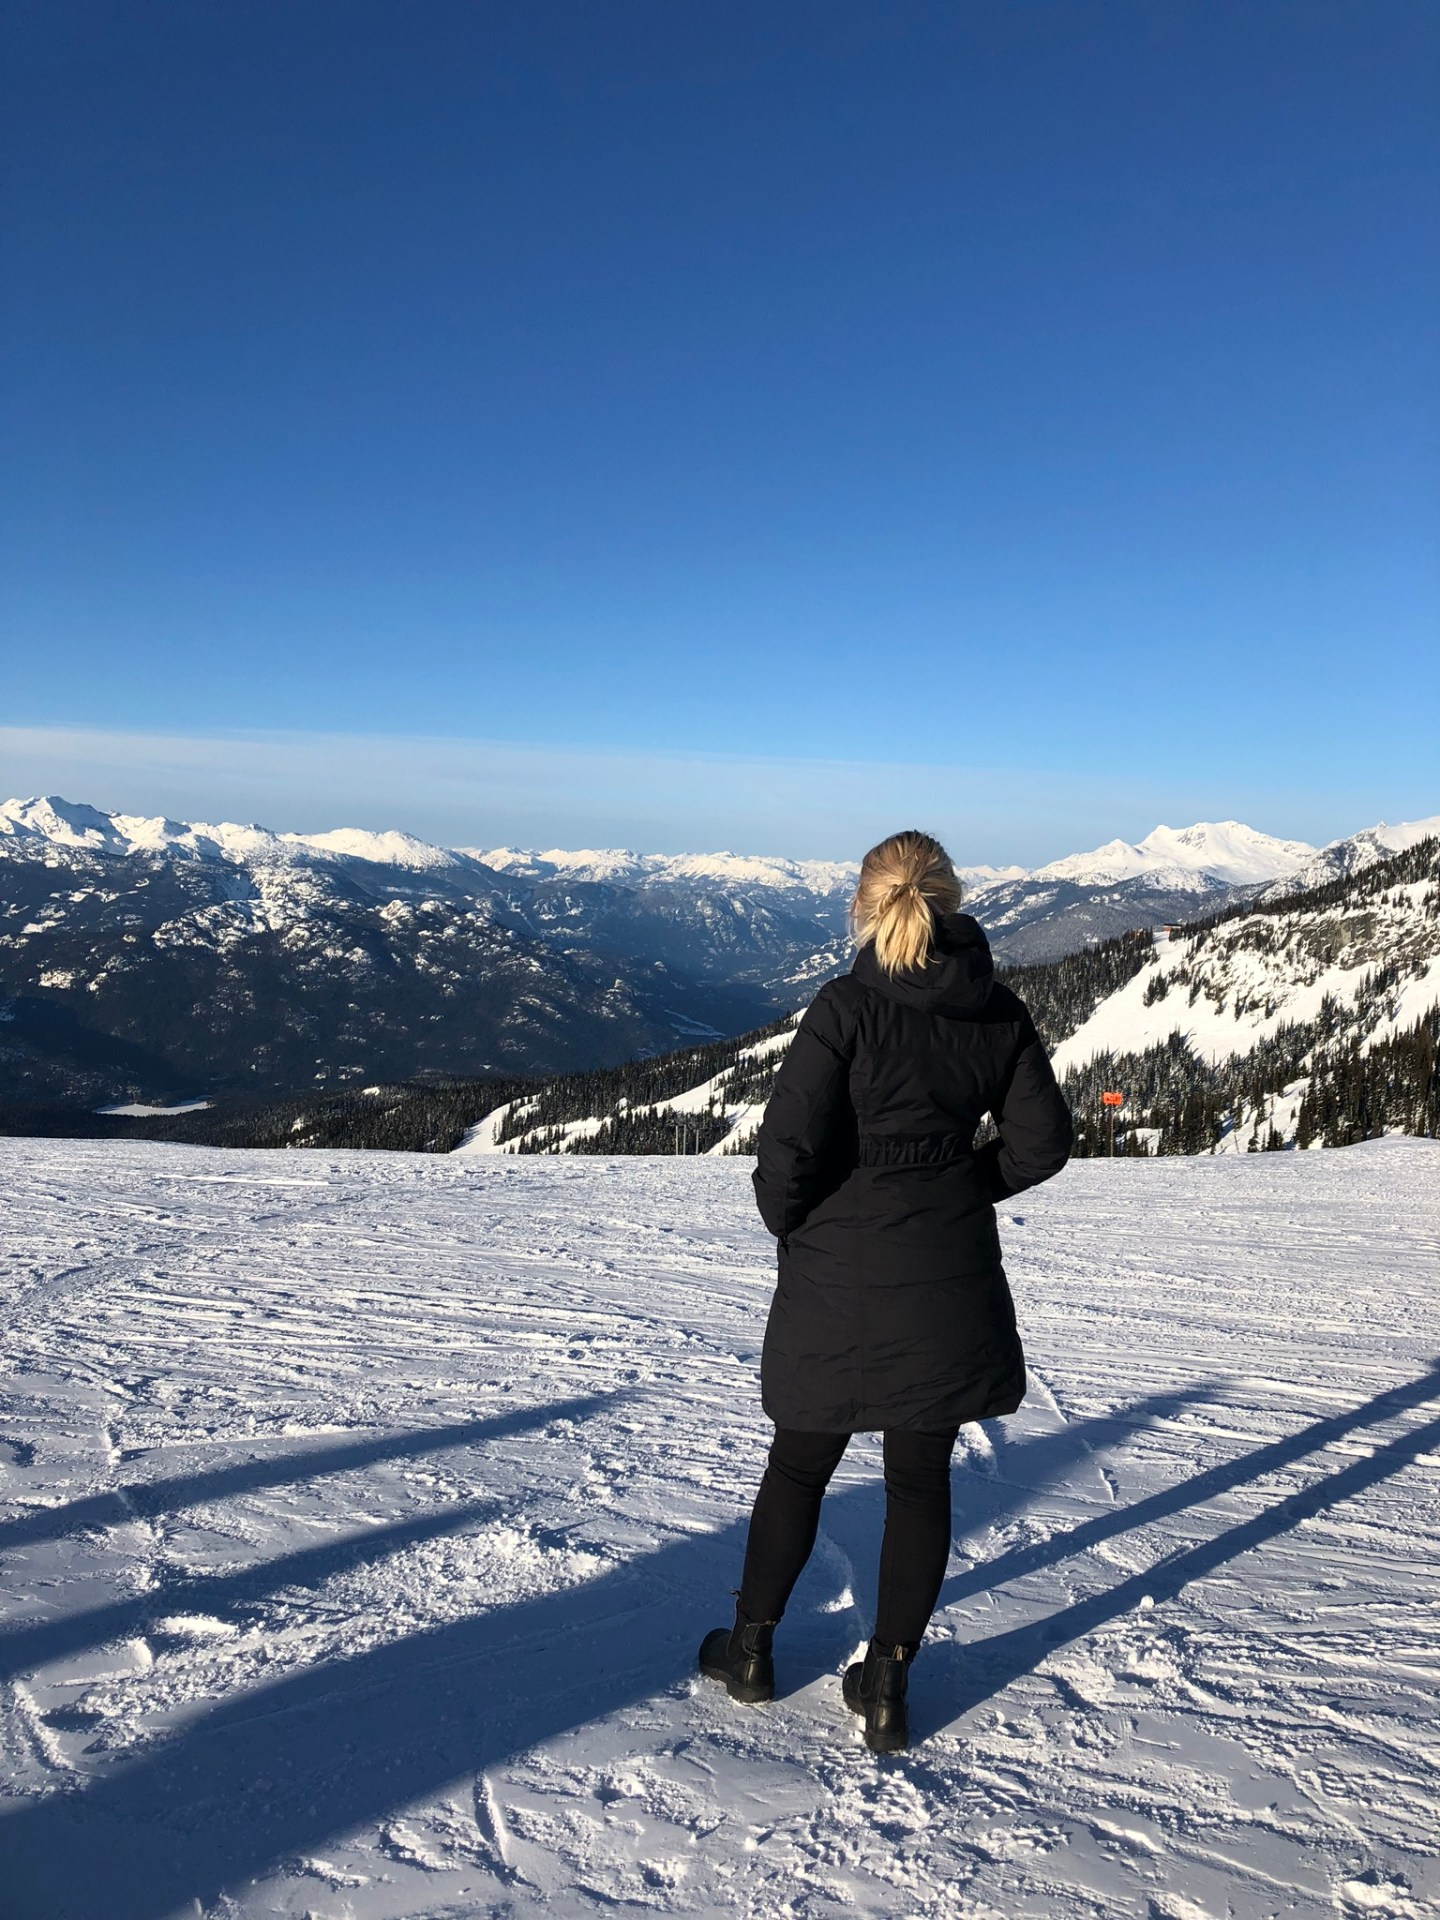 Views from the chairlift up to Whistler, British Columbia